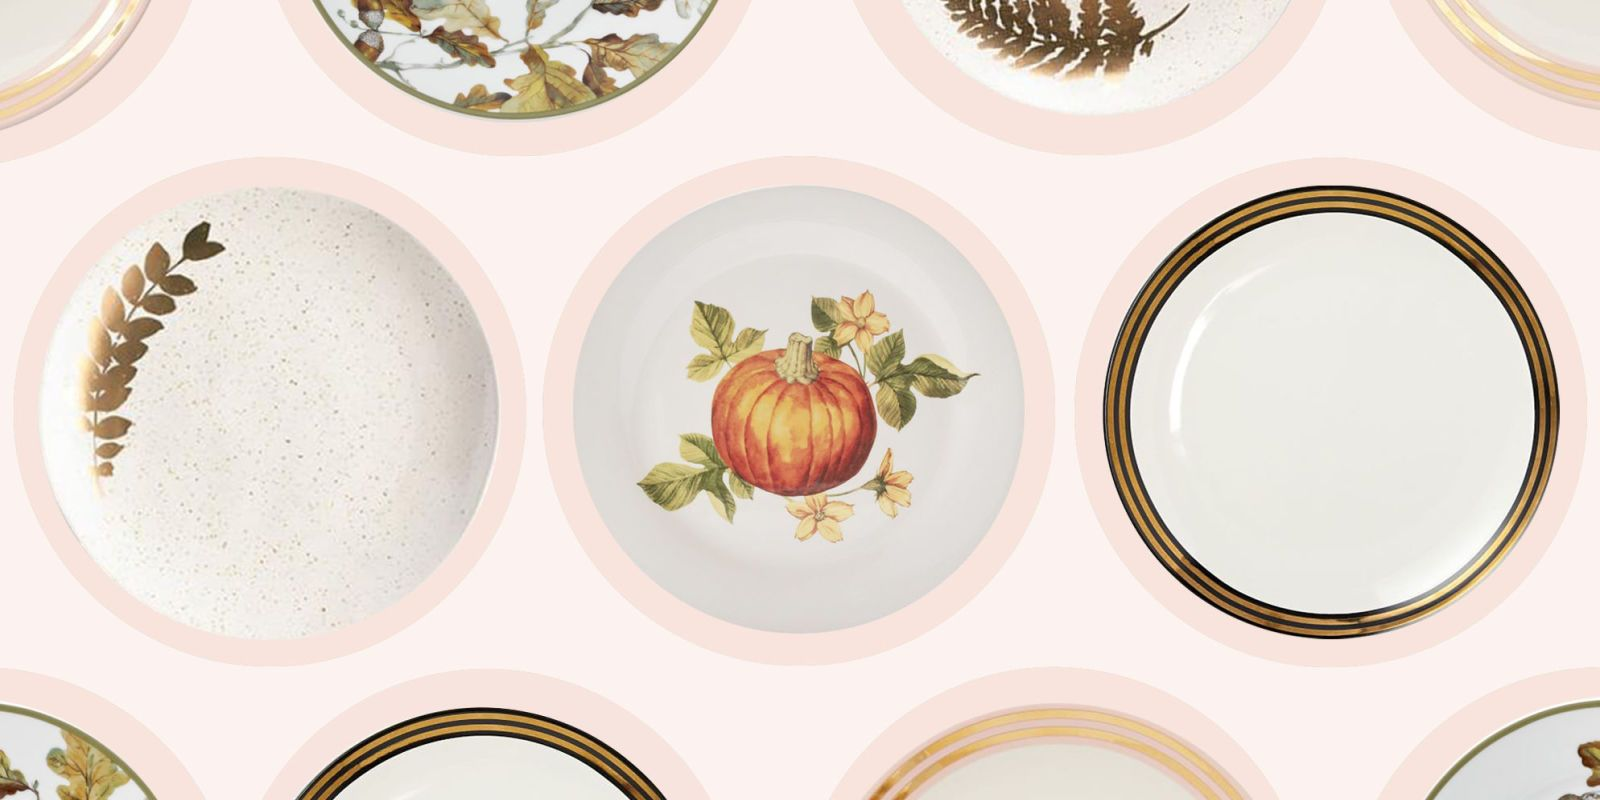 Thanksgiving dishes  sc 1 st  BestProducts.com & Chic Thanksgiving Dinnerware for Hosting in 2018 - Thanksgiving ...